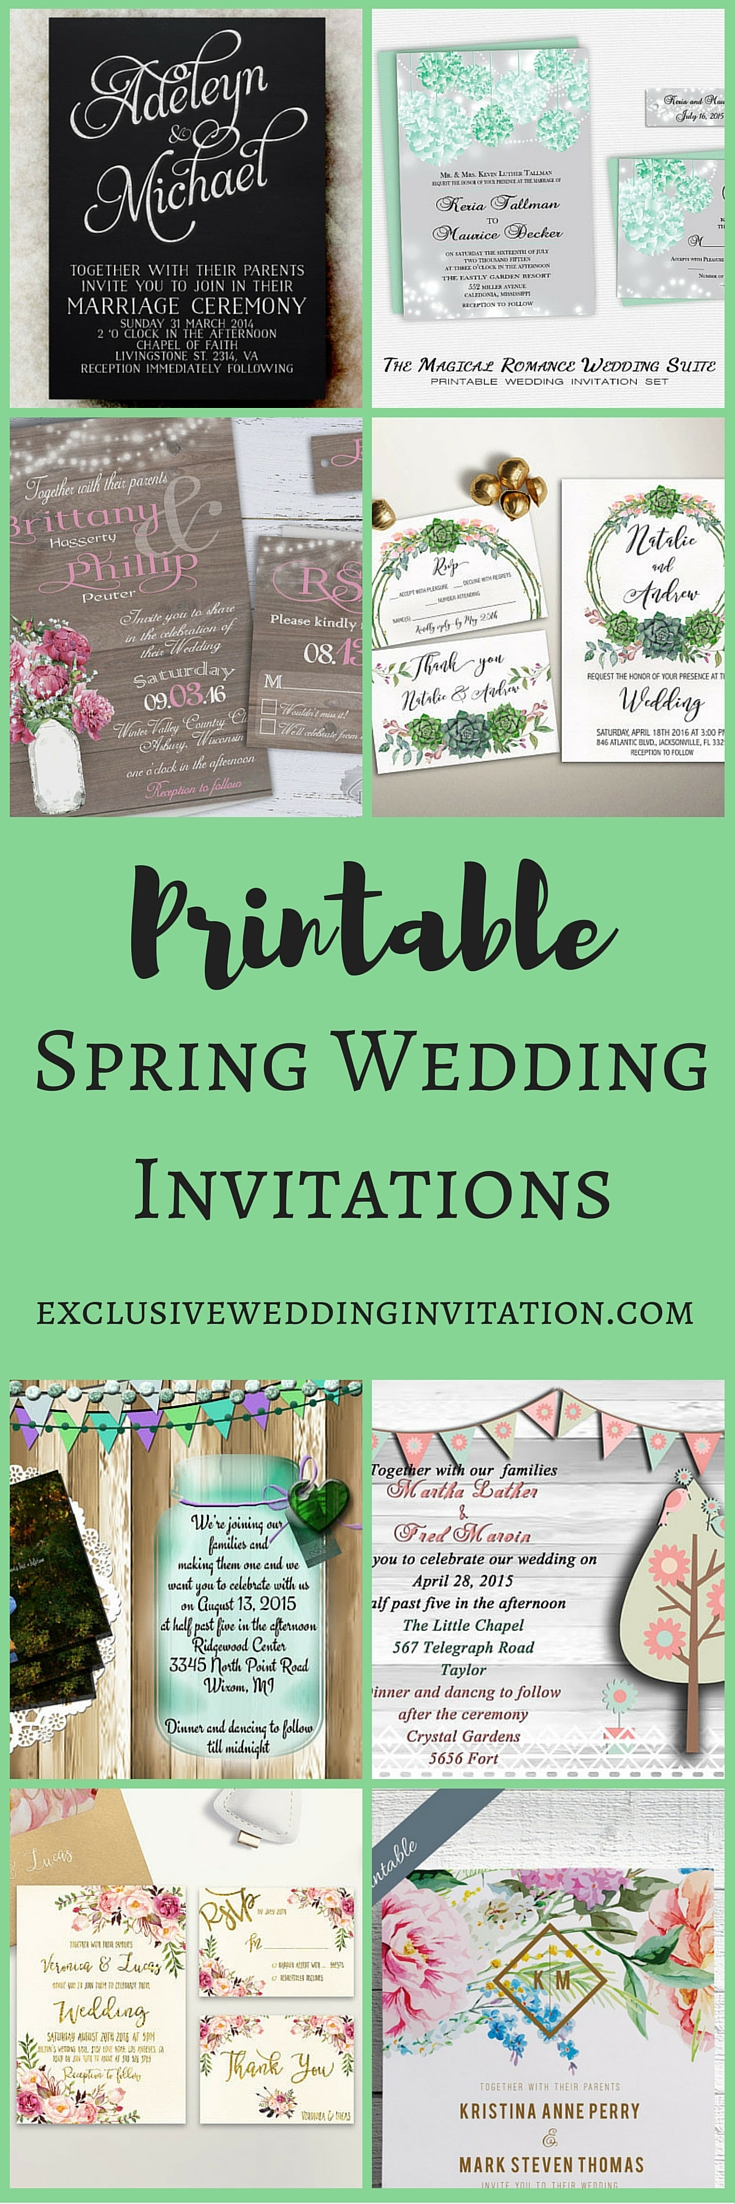 Printable Spring Wedding Invitations